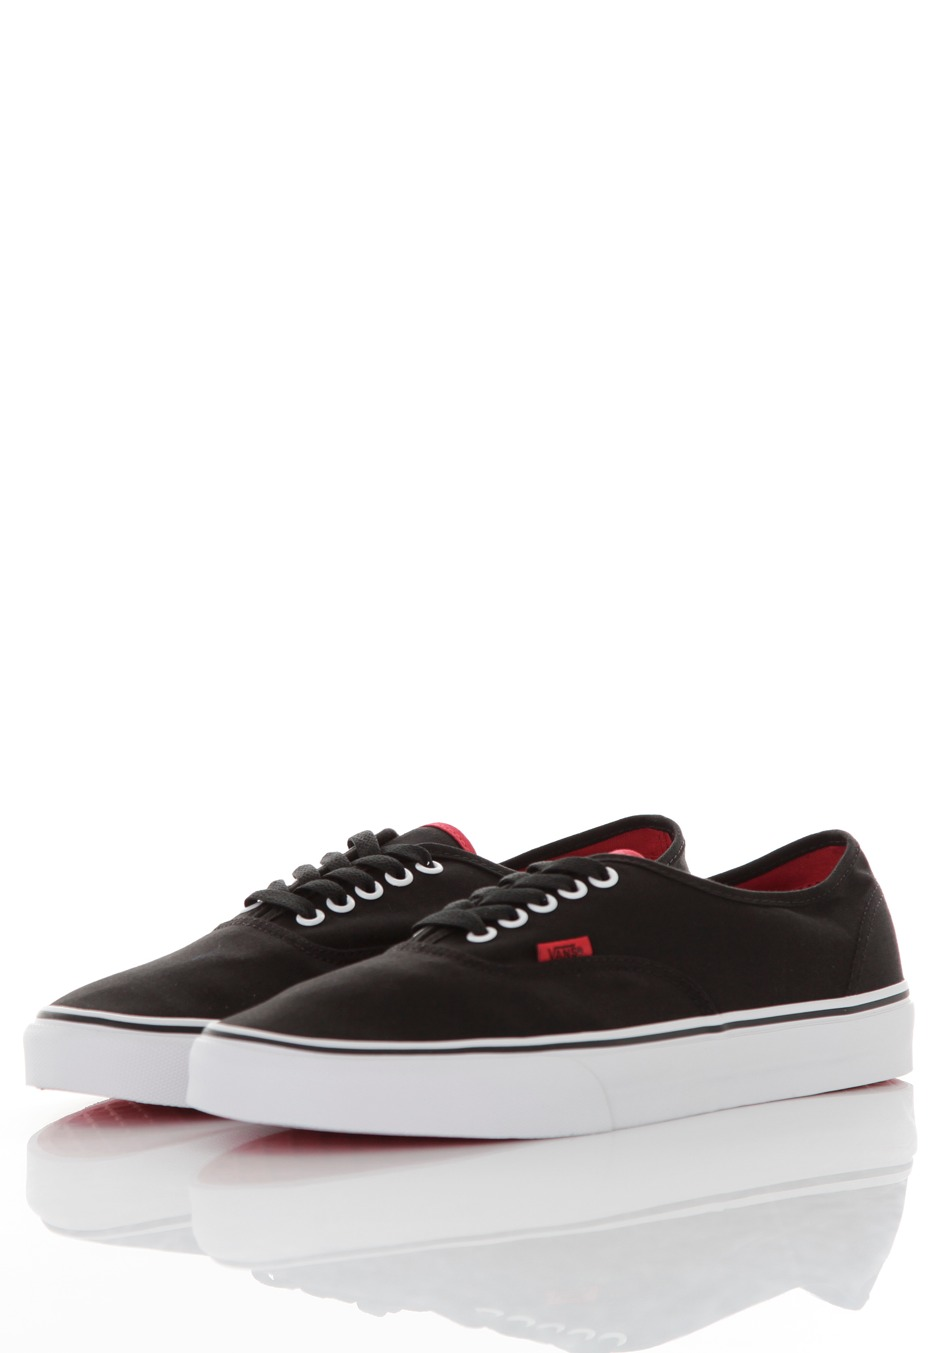 Vans - Authentic Pop Black Chinese Red - Sapatos - Impericon.com PT 719bd3a69